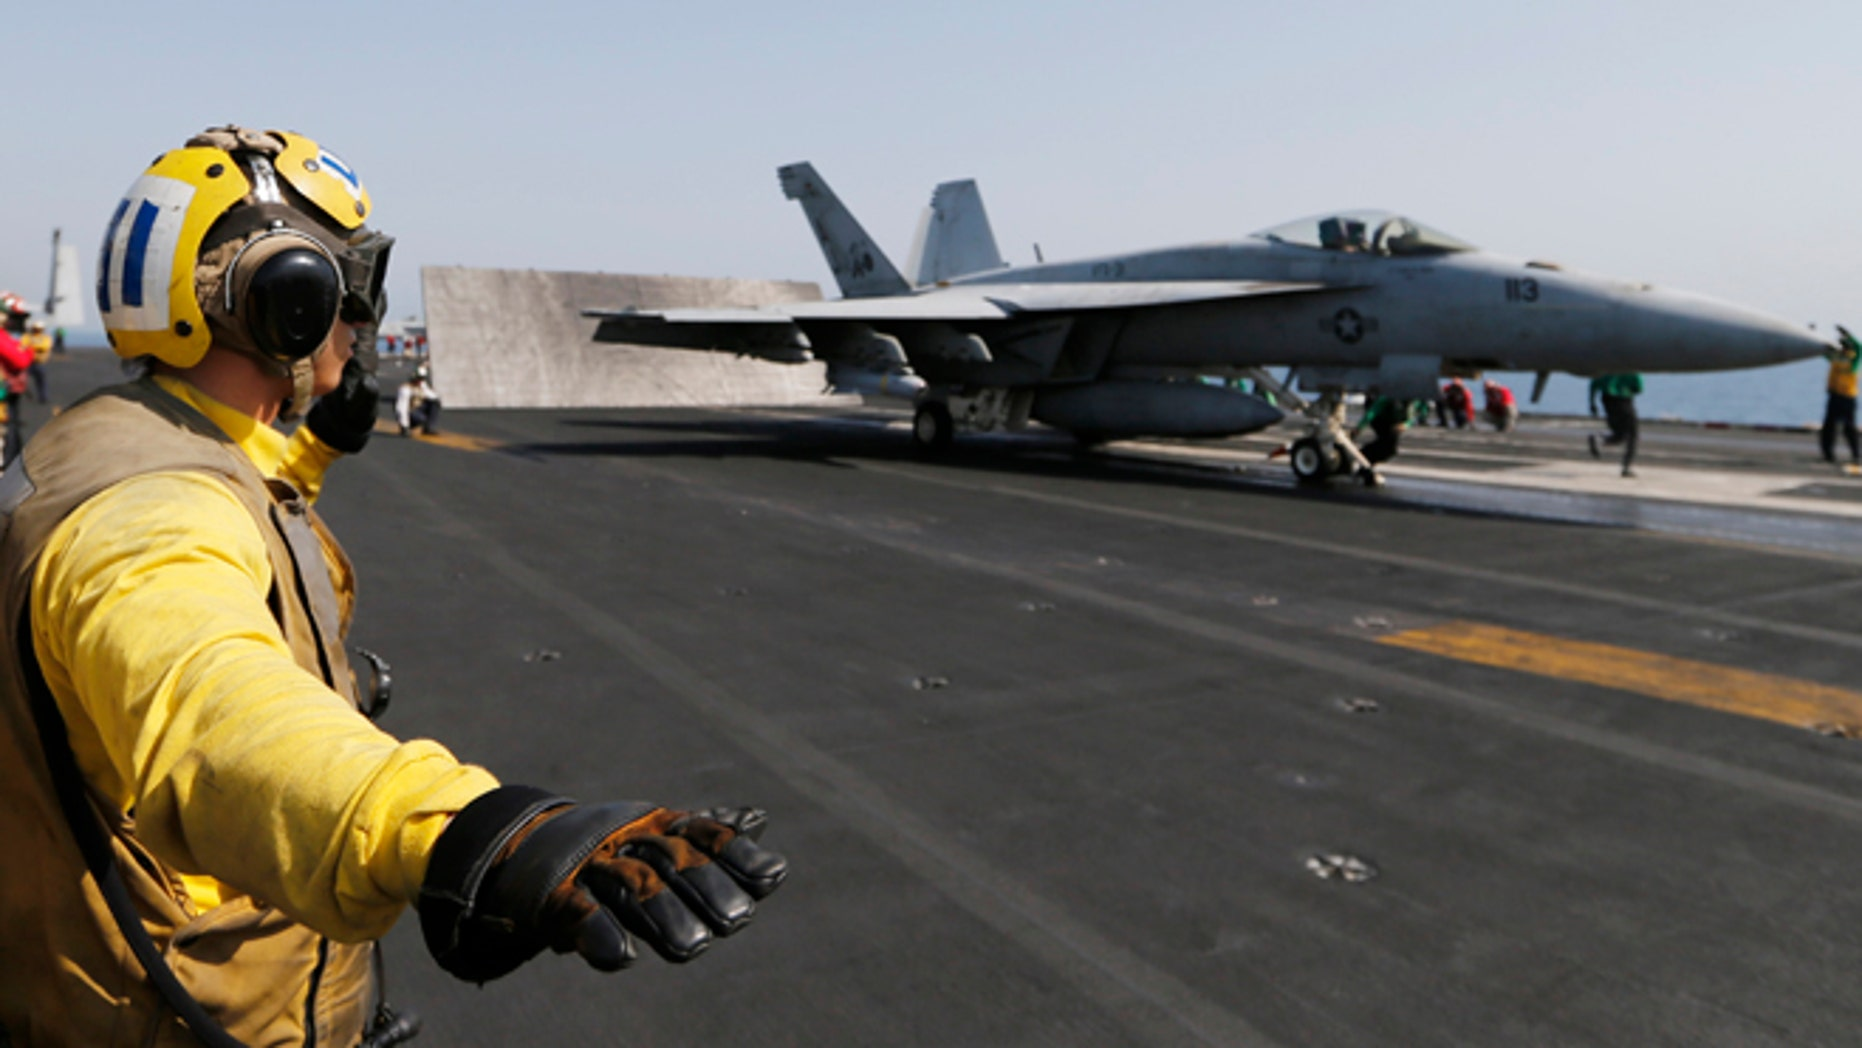 Aug 12, 2104: Flight deck crew member confirms the deck is all clear before a F/A-18C Hornet of Strike Fighter Squadron (VFA-87) take offs the aircraft carrier USS George H.W. Bush (CVN 77), in the Gulf.